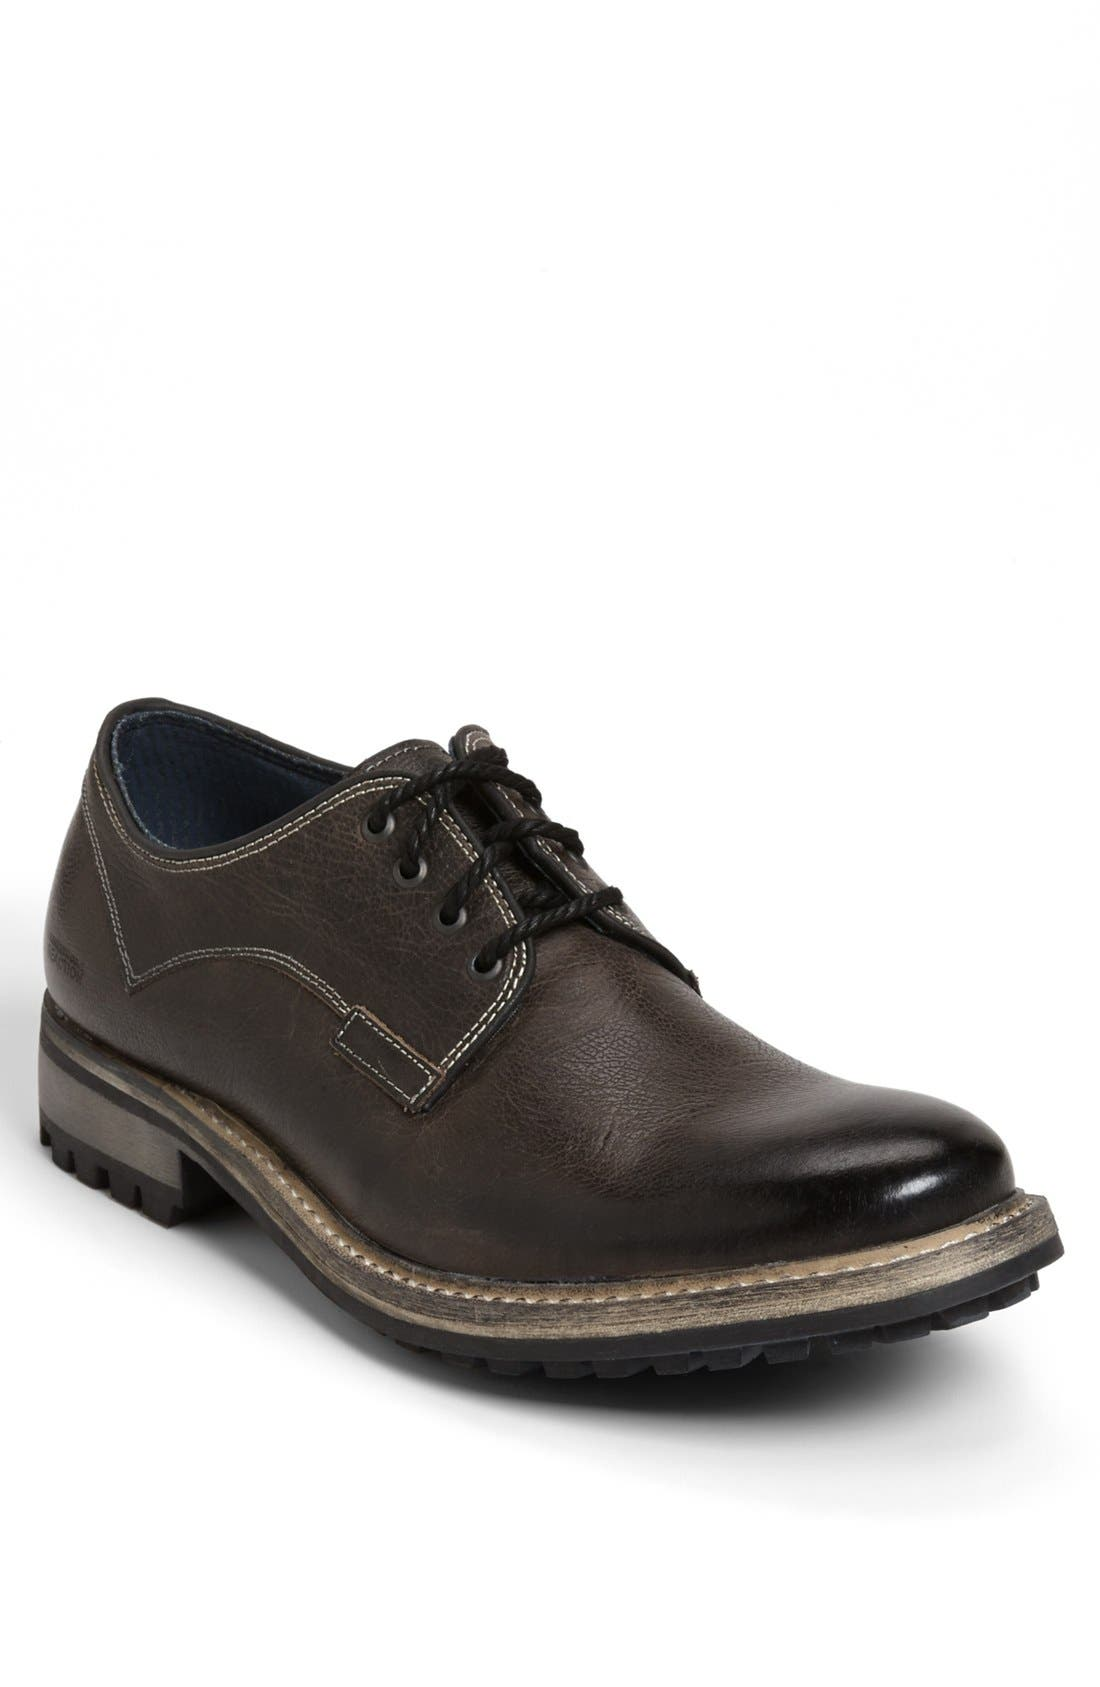 Alternate Image 1 Selected - Kenneth Cole Reaction 'Court Less-Ter' Plain Toe Derby